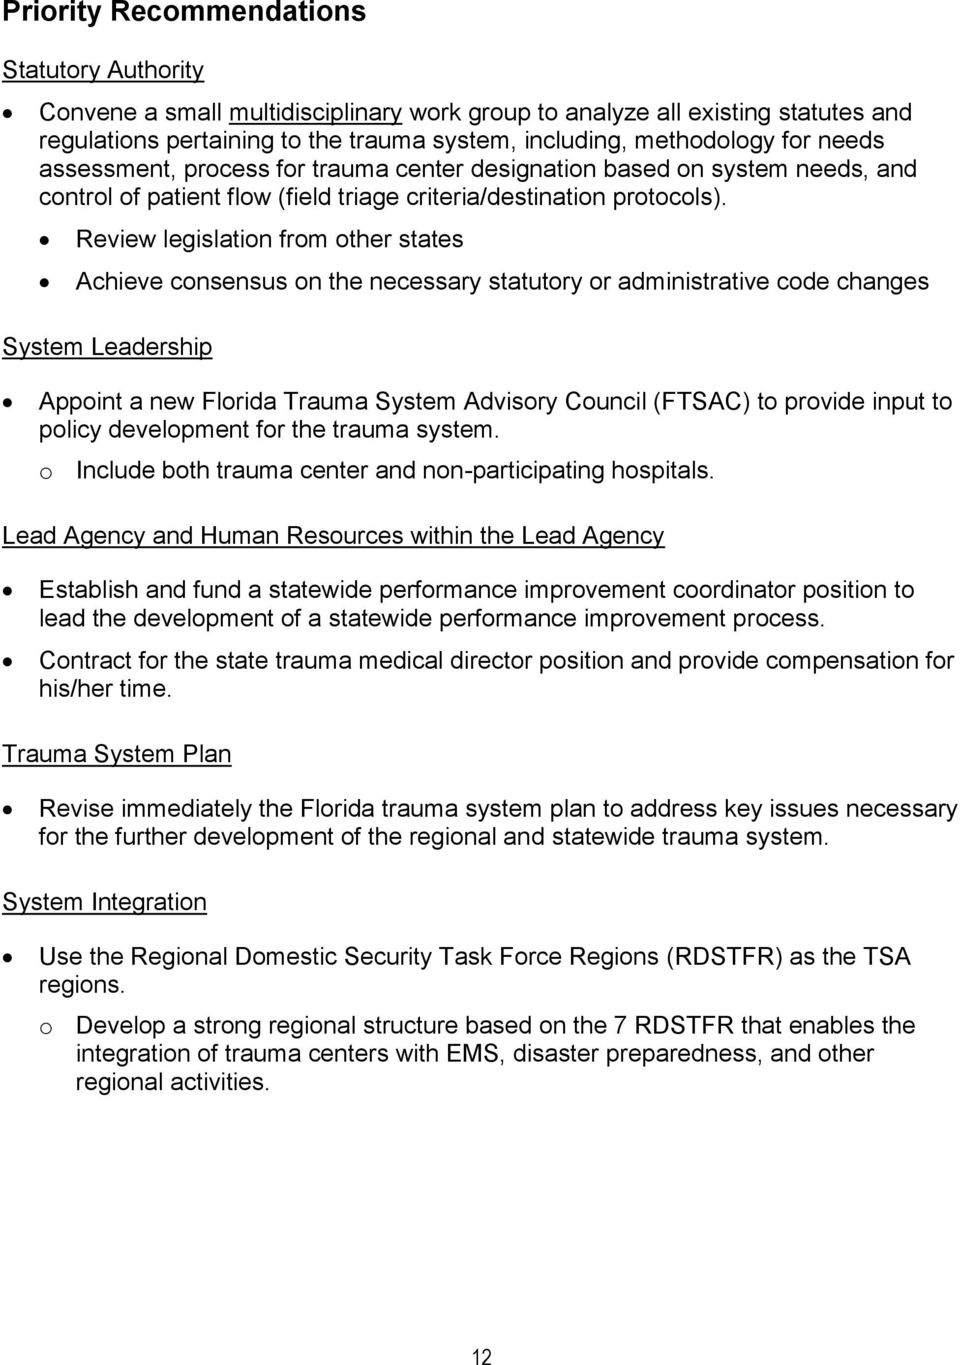 Review legislation from other states Achieve consensus on the necessary statutory or administrative code changes System Leadership Appoint a new Florida Trauma System Advisory Council (FTSAC) to